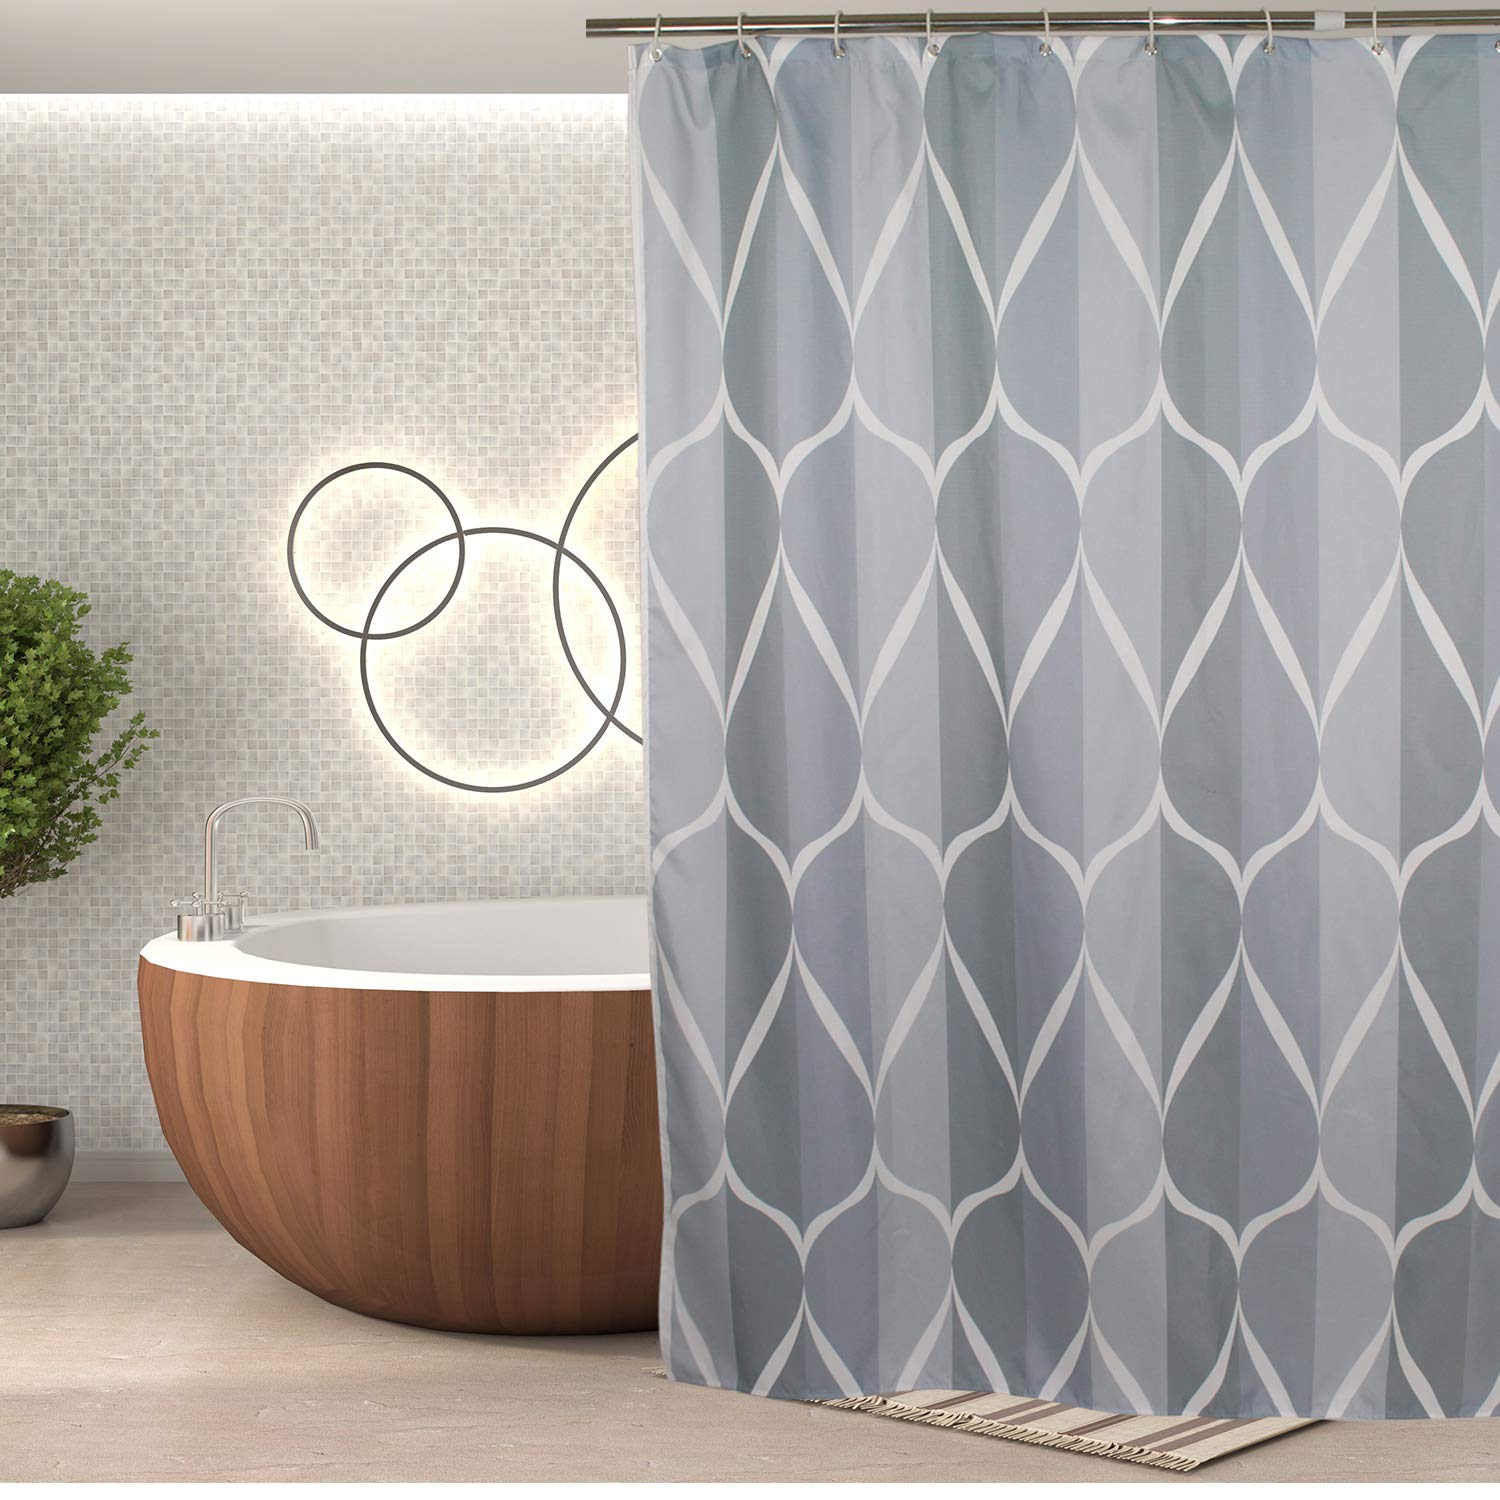 Shower Curtain Decor, Fashion Mildew Resistant Fabric Bathroom Decor Set with 12 Hooks, 72 x 72, Water Repellent 72 x 72 Modase